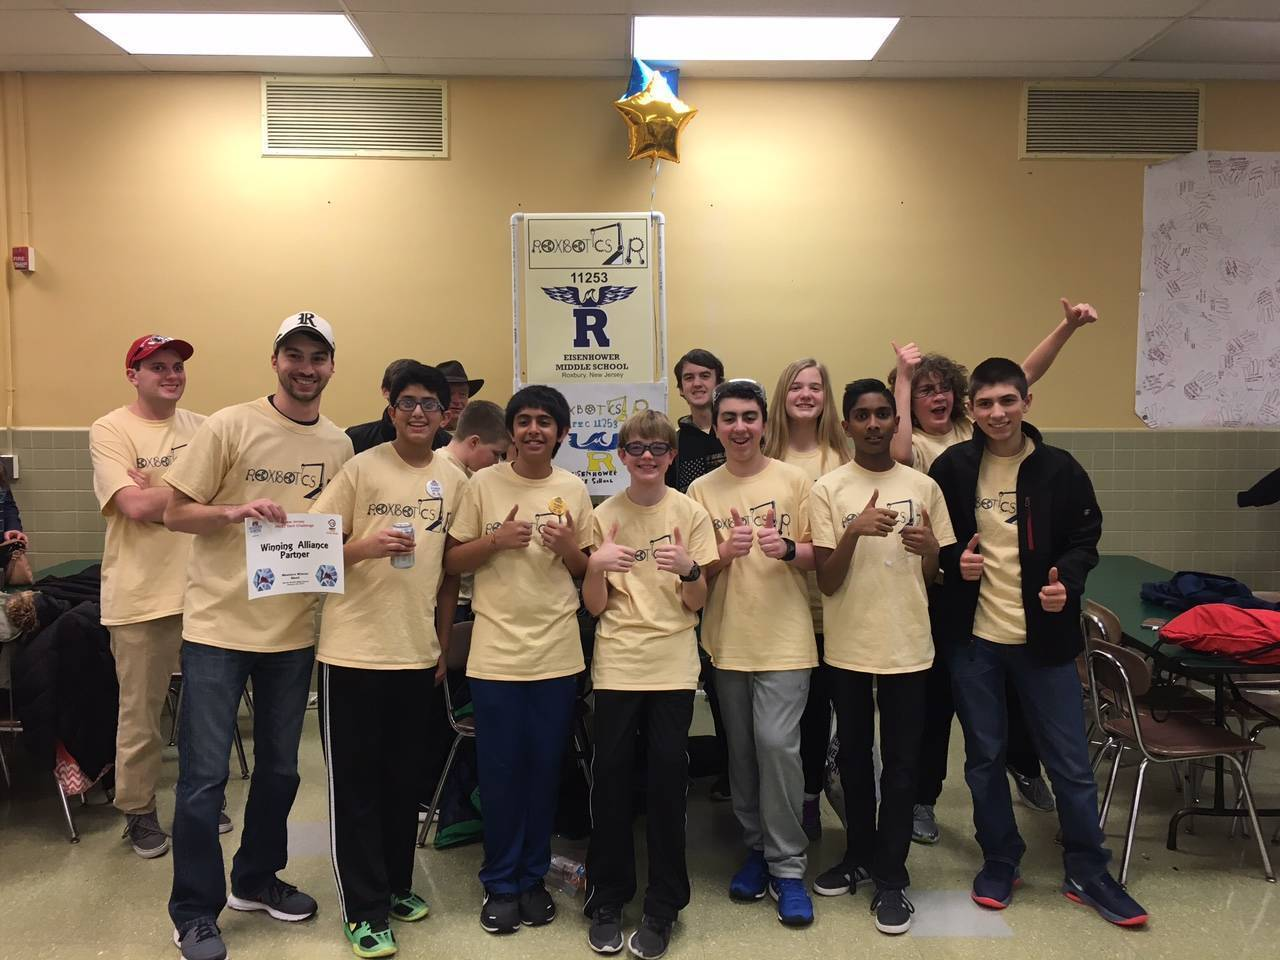 fd70f64b54d4aa9d2513_72e3eac965c474977663_EMS_Roxbotix_Jr_Team_at_FTC_Competition_15.jpg